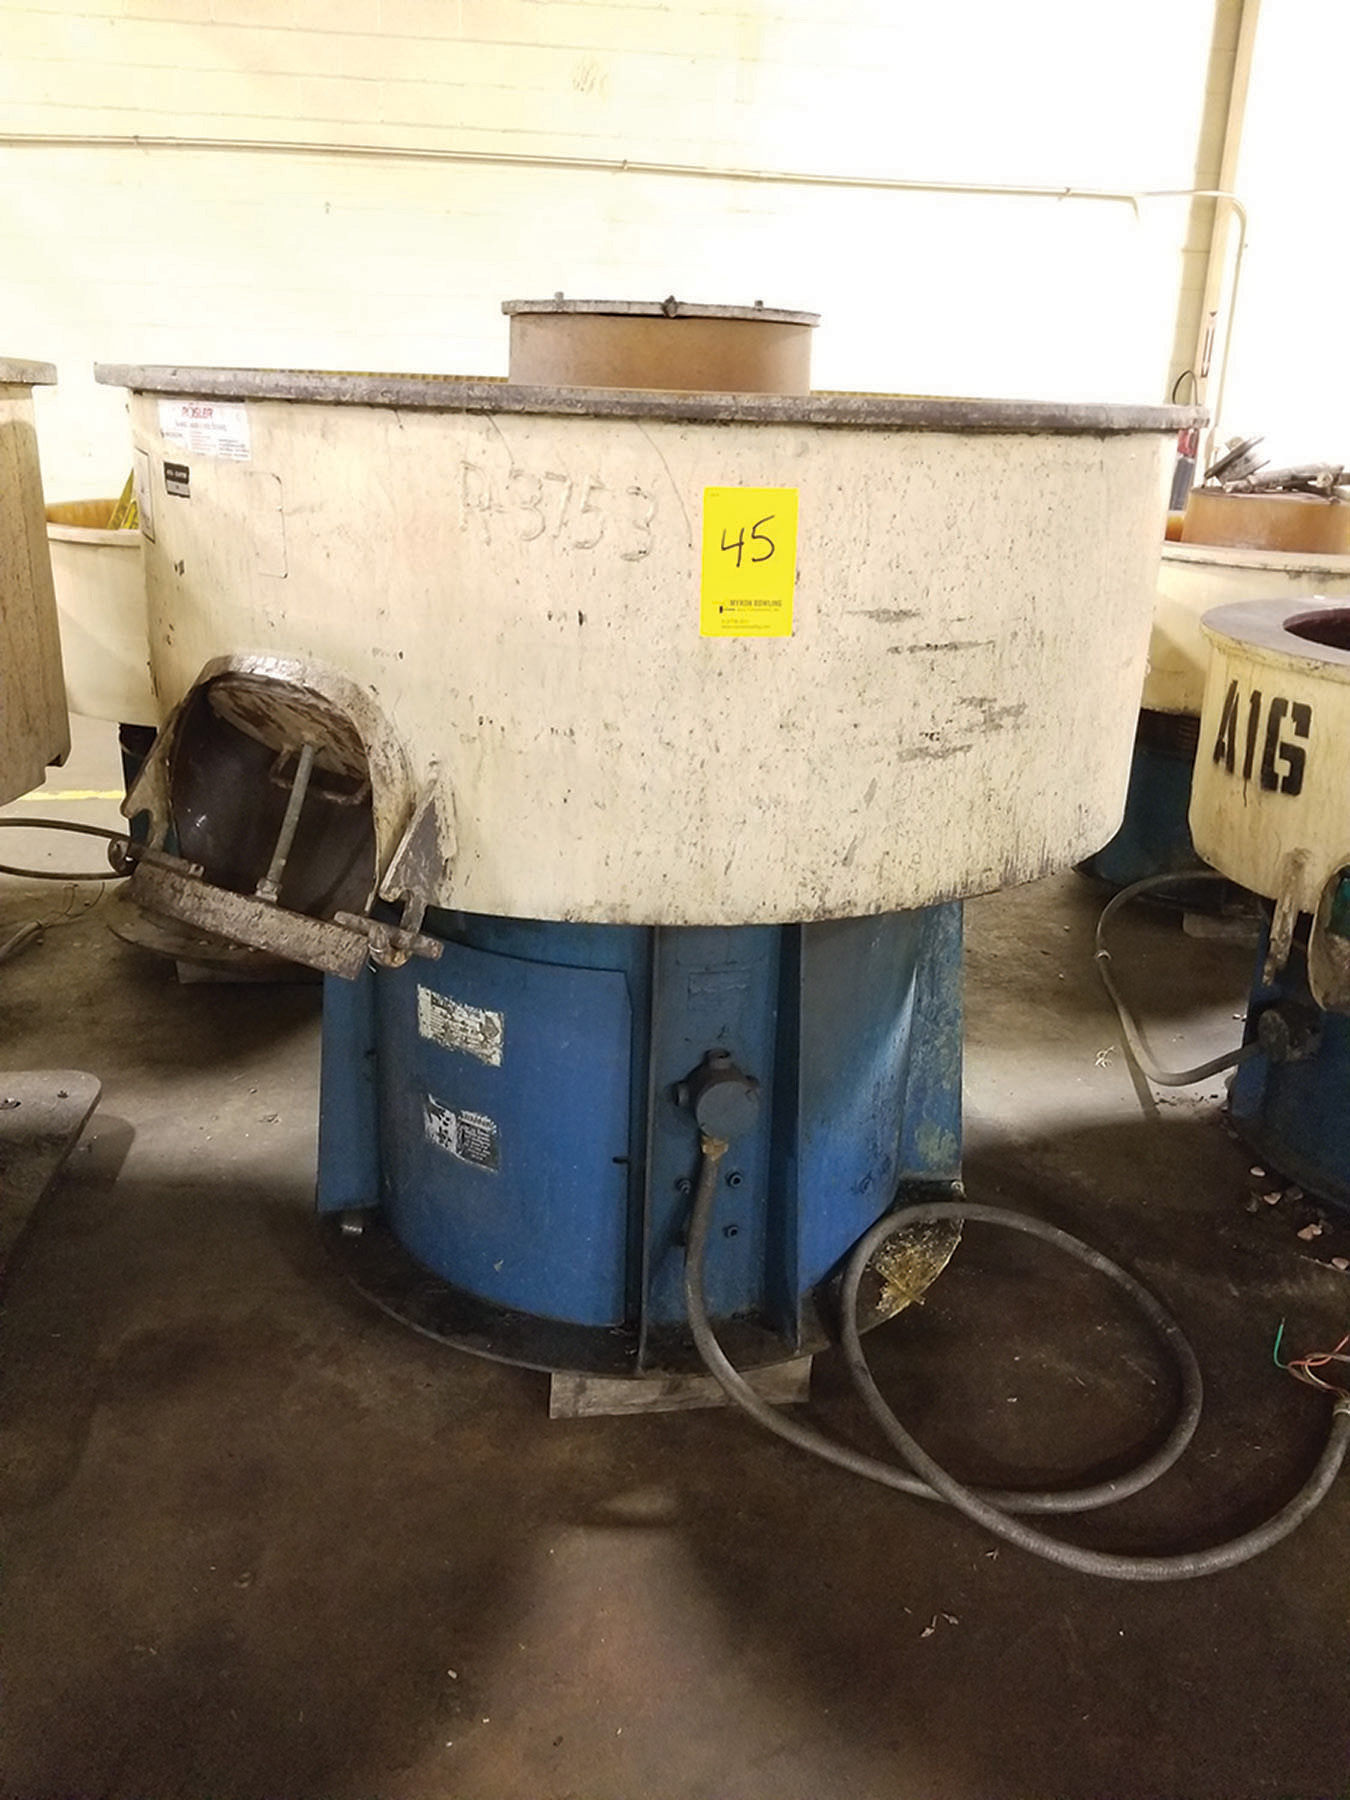 Lot 45 - ROSLER VIBRATORY BOWL FINISHER; 57'' DIA. X 16'' DEEP ***$50.00 RIGGING FEE***